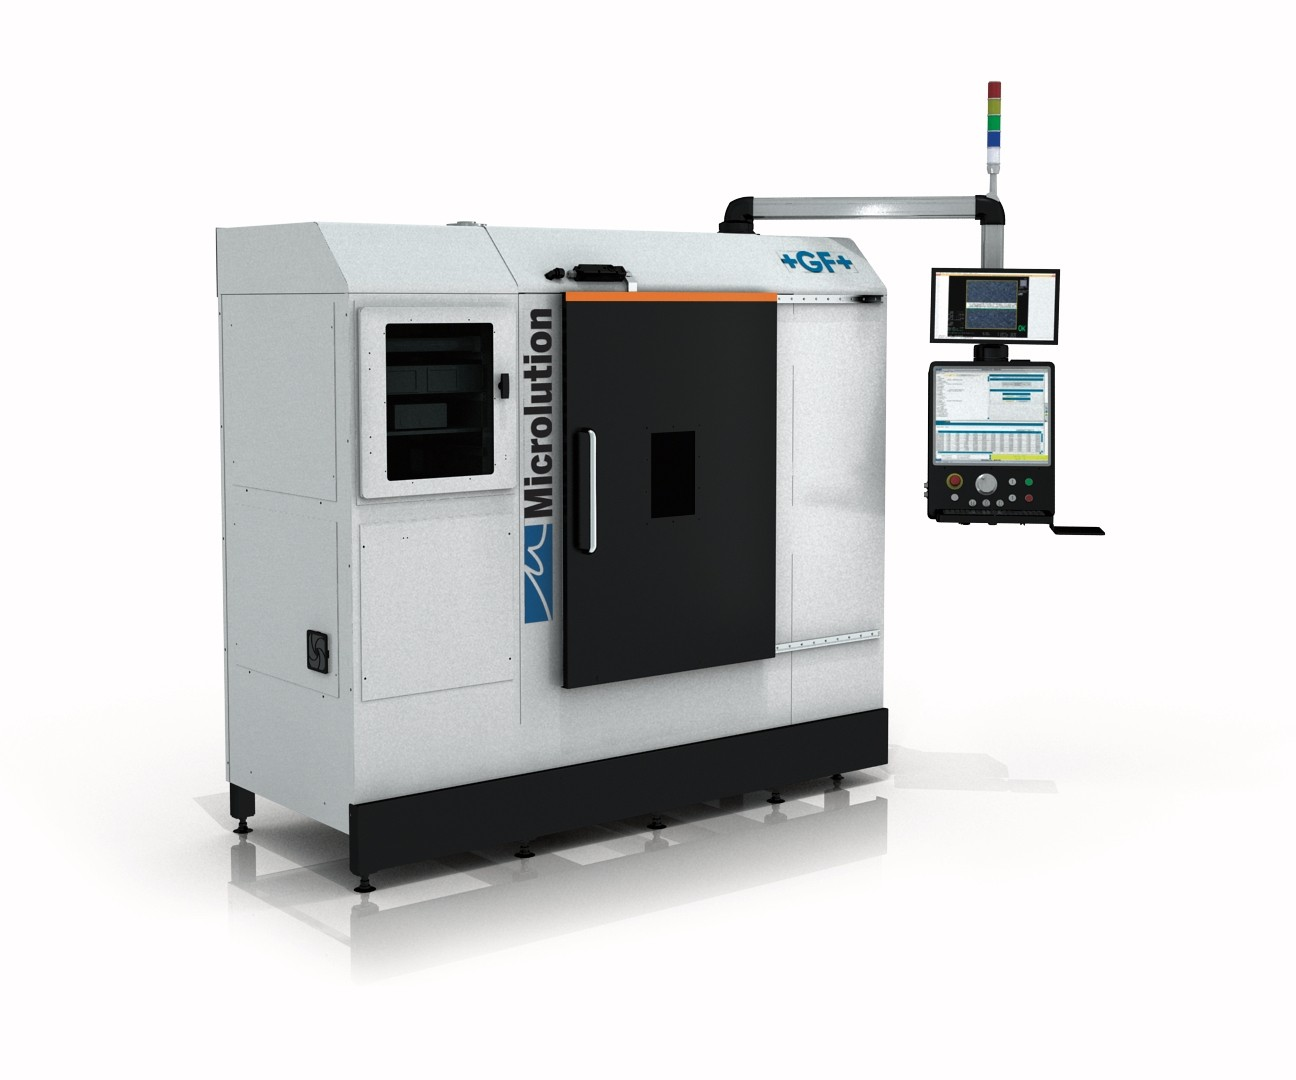 GF Machining Solutions' Microlution ML-5  industrial-grade laser micromachining platform